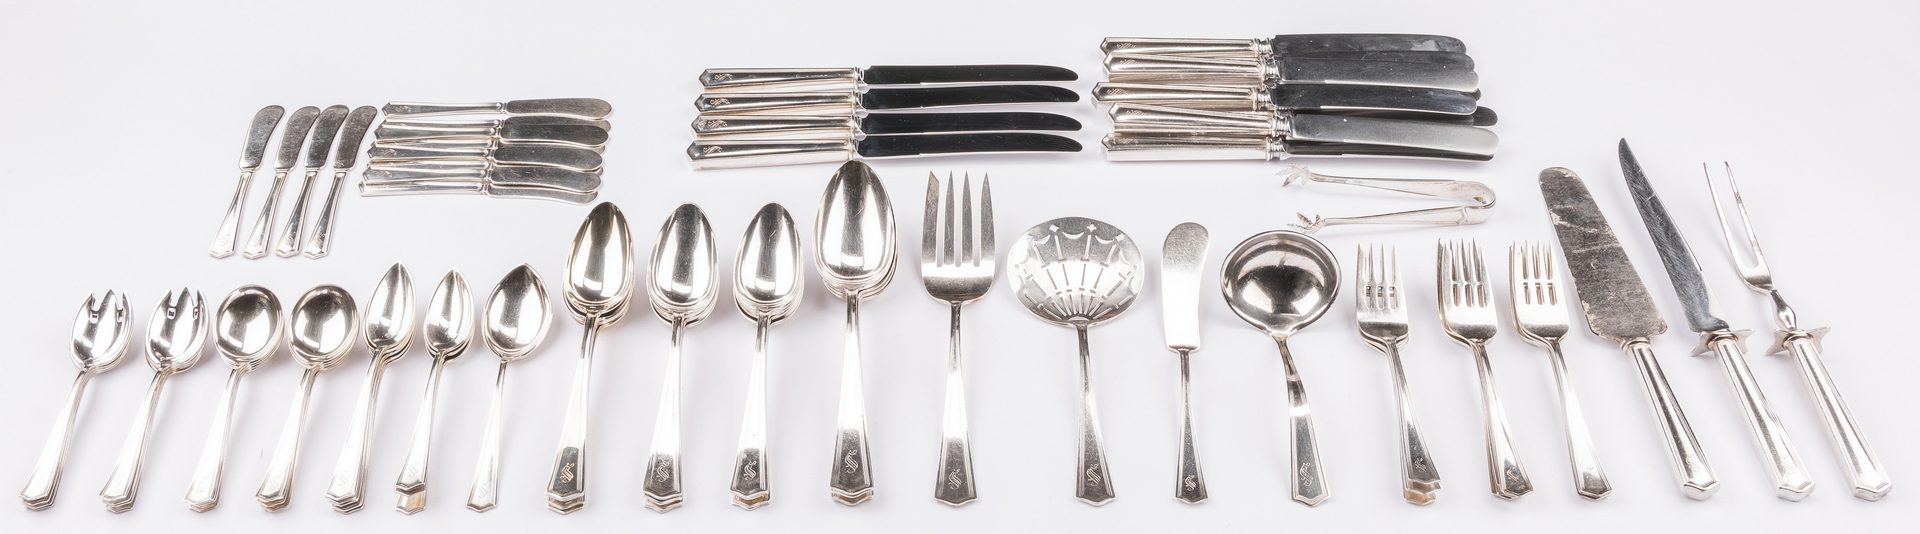 Lot 565: 85 pcs International Sterling Flatware, Beacon Hill